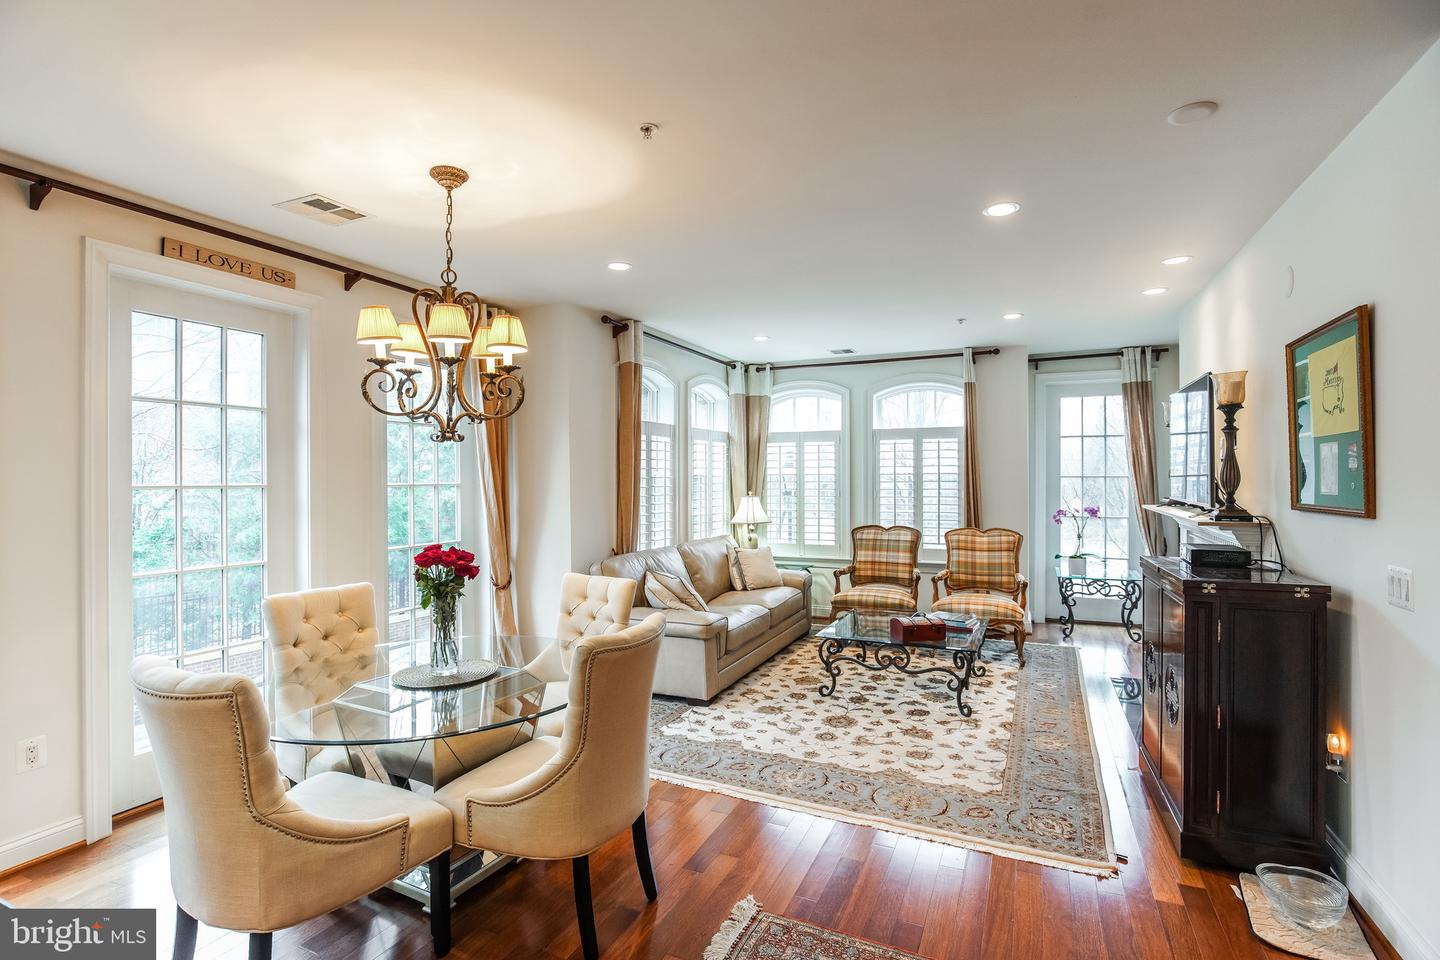 Additional photo for property listing at 1781 Chain Bridge Rd #108 1781 Chain Bridge Rd #108 Mclean, Virginia 22102 United States